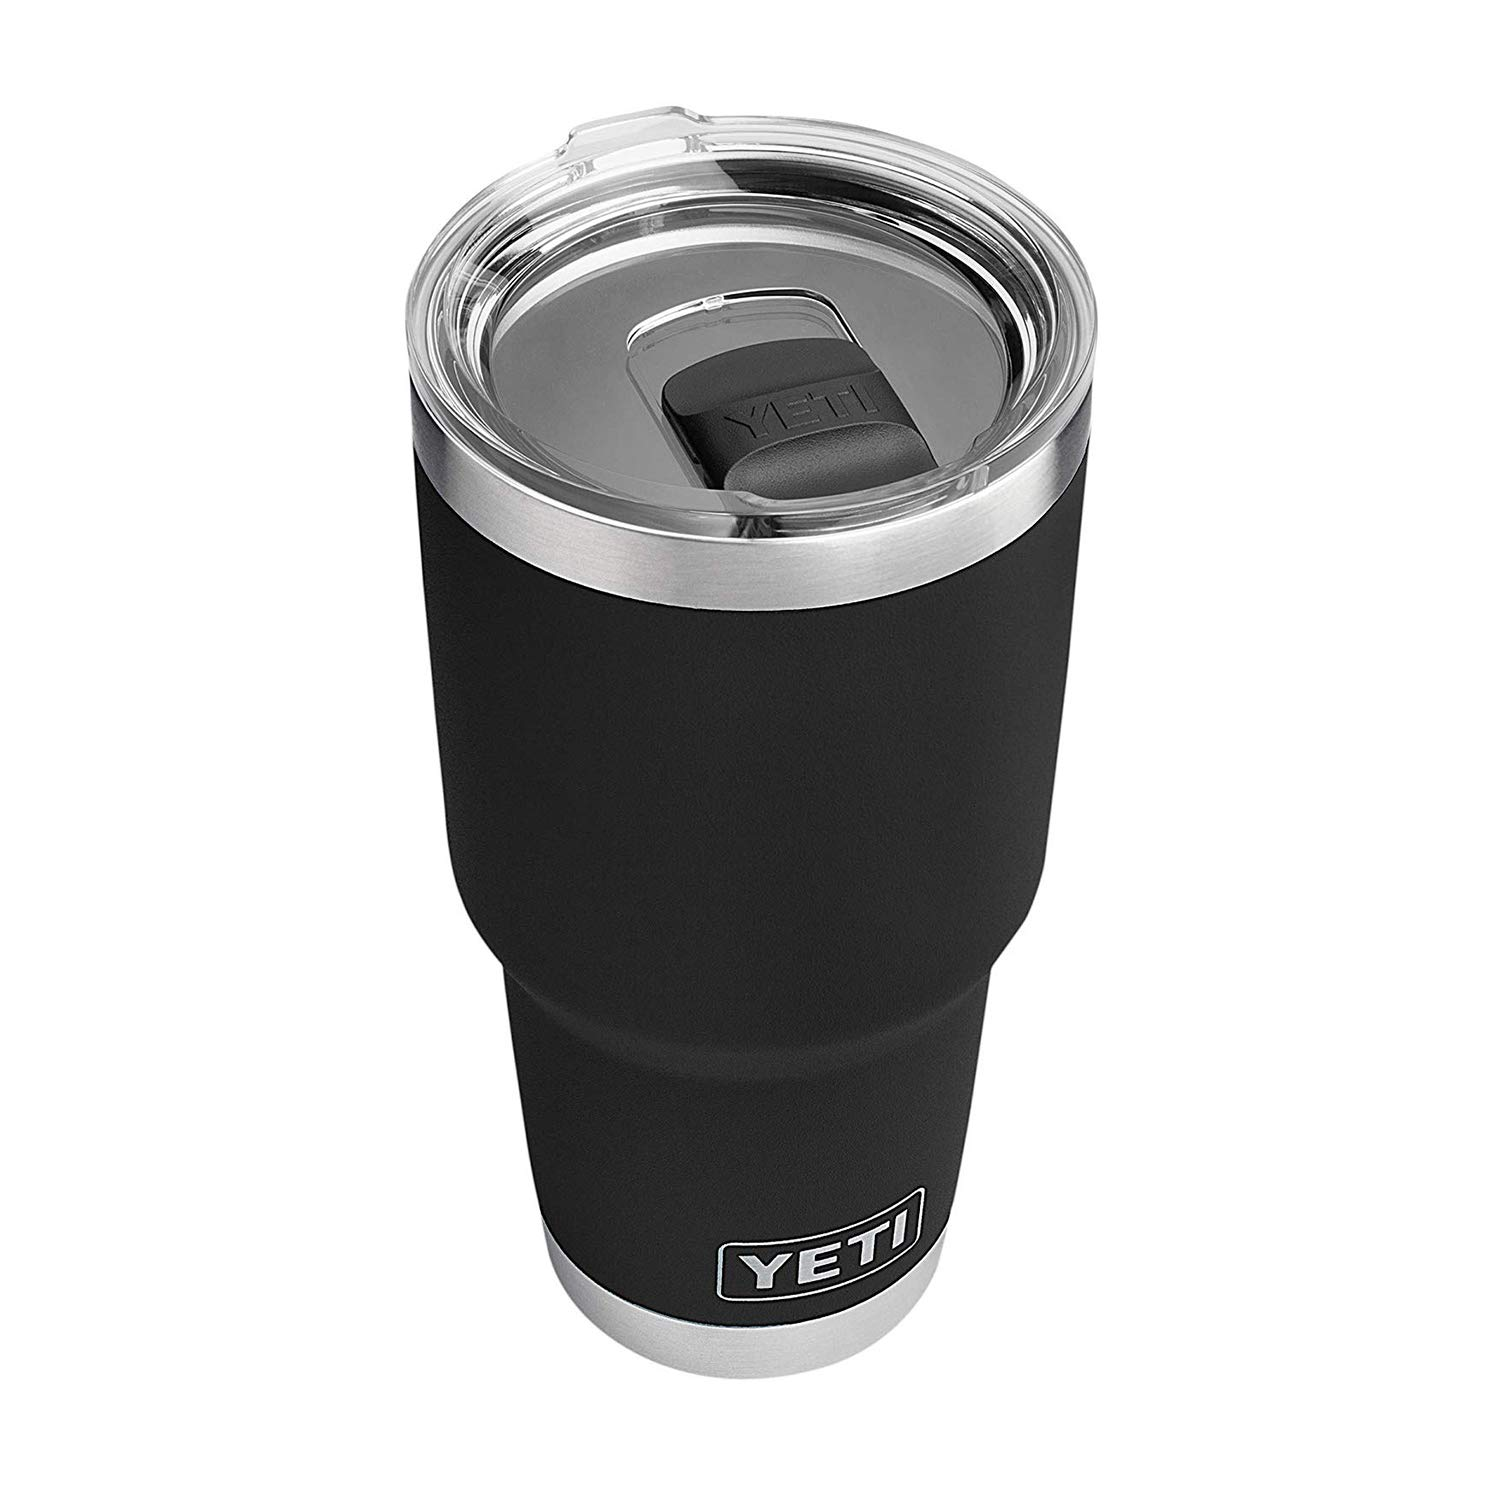 YETI-Rambler-30-oz-Stainless-Steel-Vacuum-Insulated-Tumbler-w/MagSlider-Lid